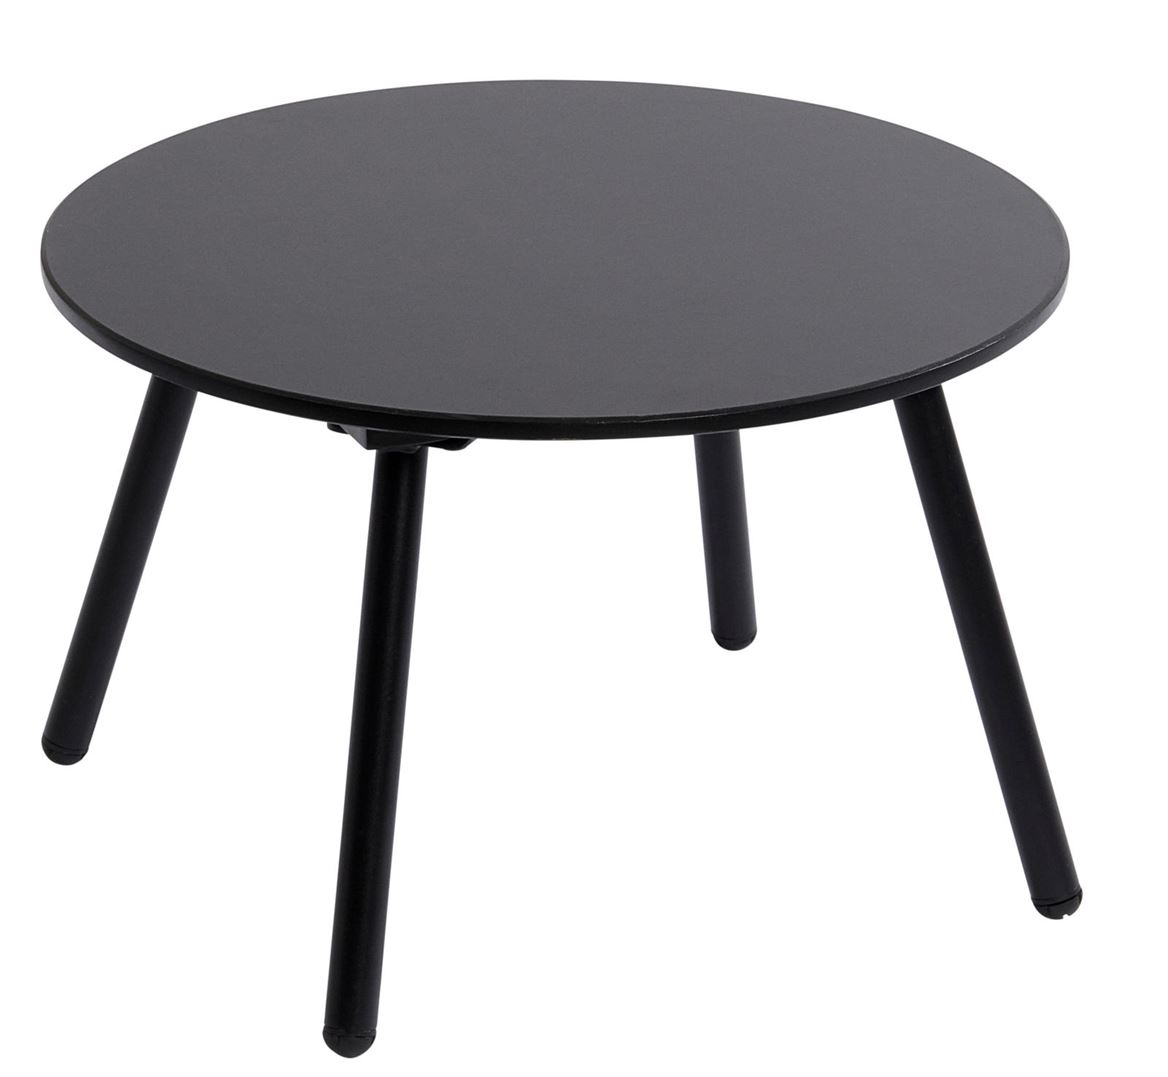 MOLLY Table lounge noir H 32 cm; Ø 50 cm_molly-table-lounge-noir-h-32-cm;-ø-50-cm